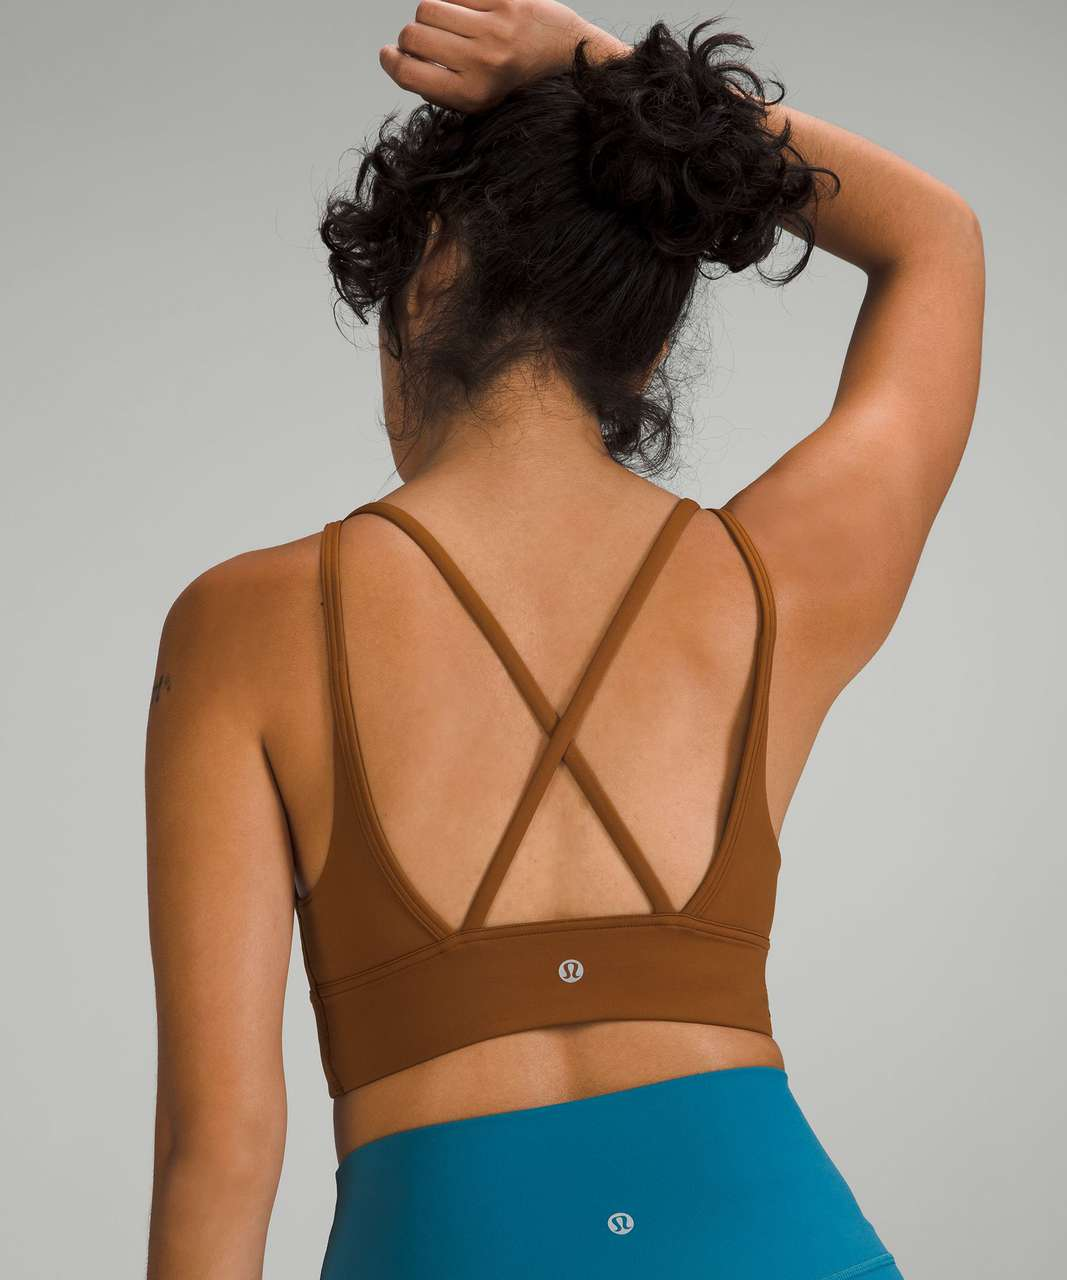 Lululemon In Alignment Longline Bra *Light Support, B/C Cup - Copper Brown